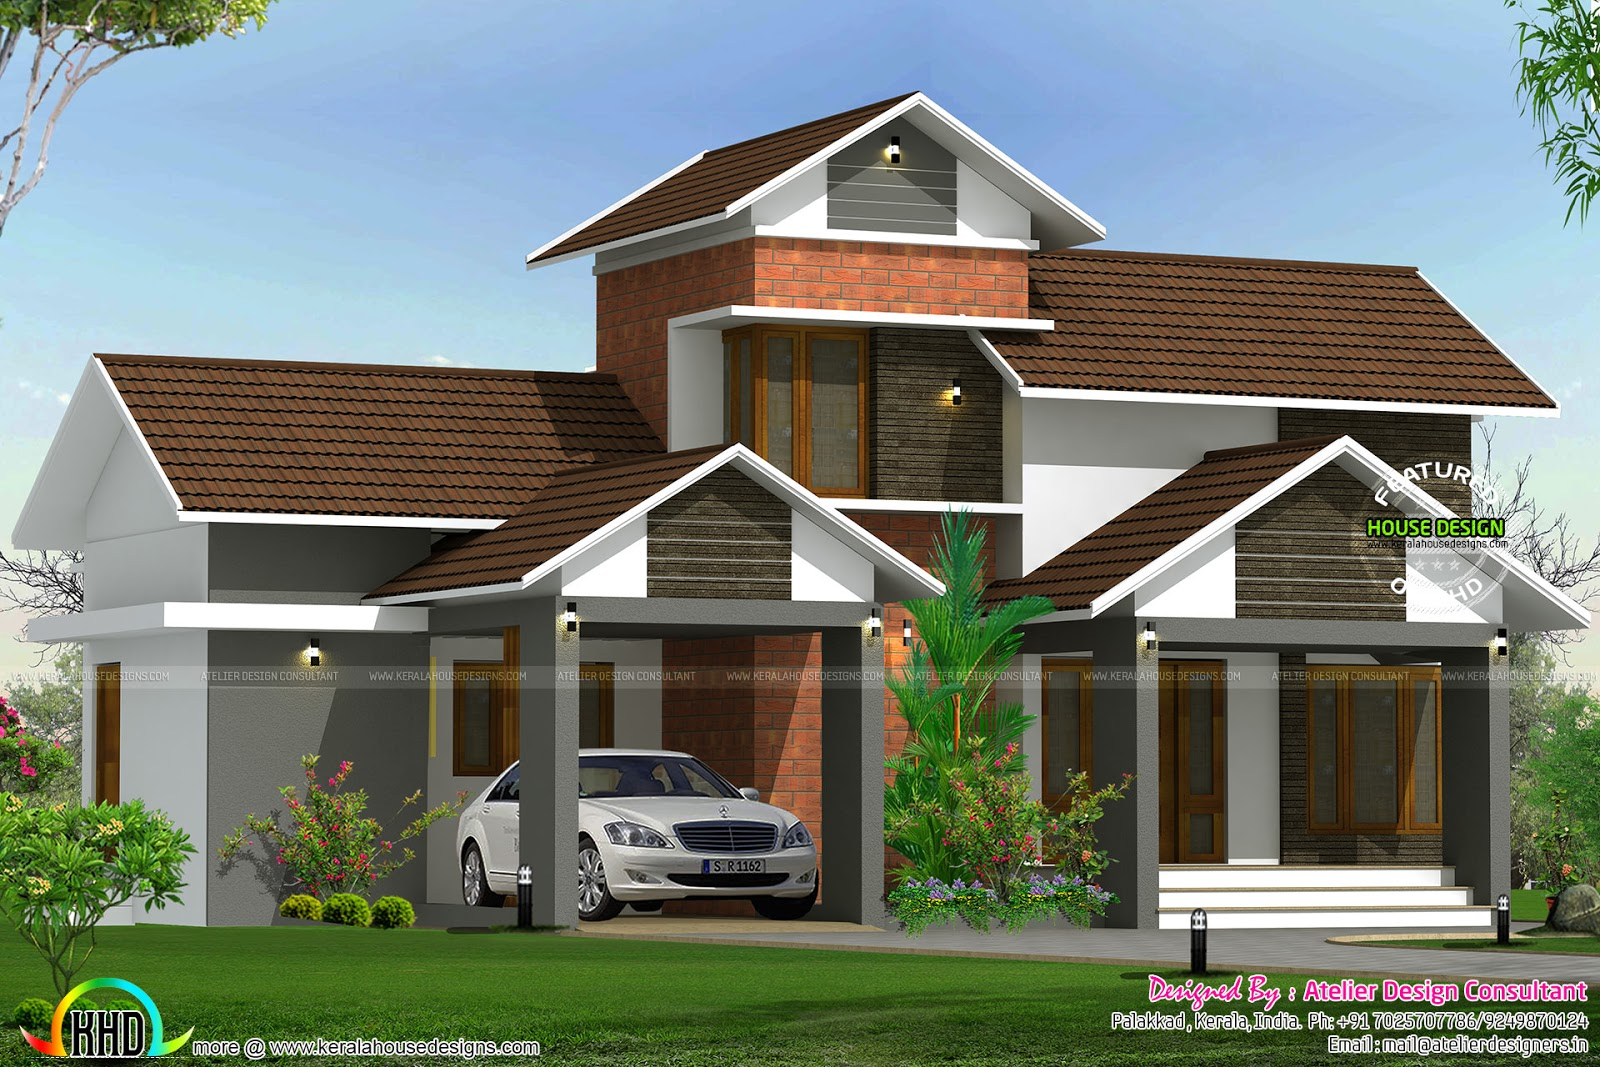 20 lakhs house plan kerala home design and floor plans for Home floor plans with estimated cost to build